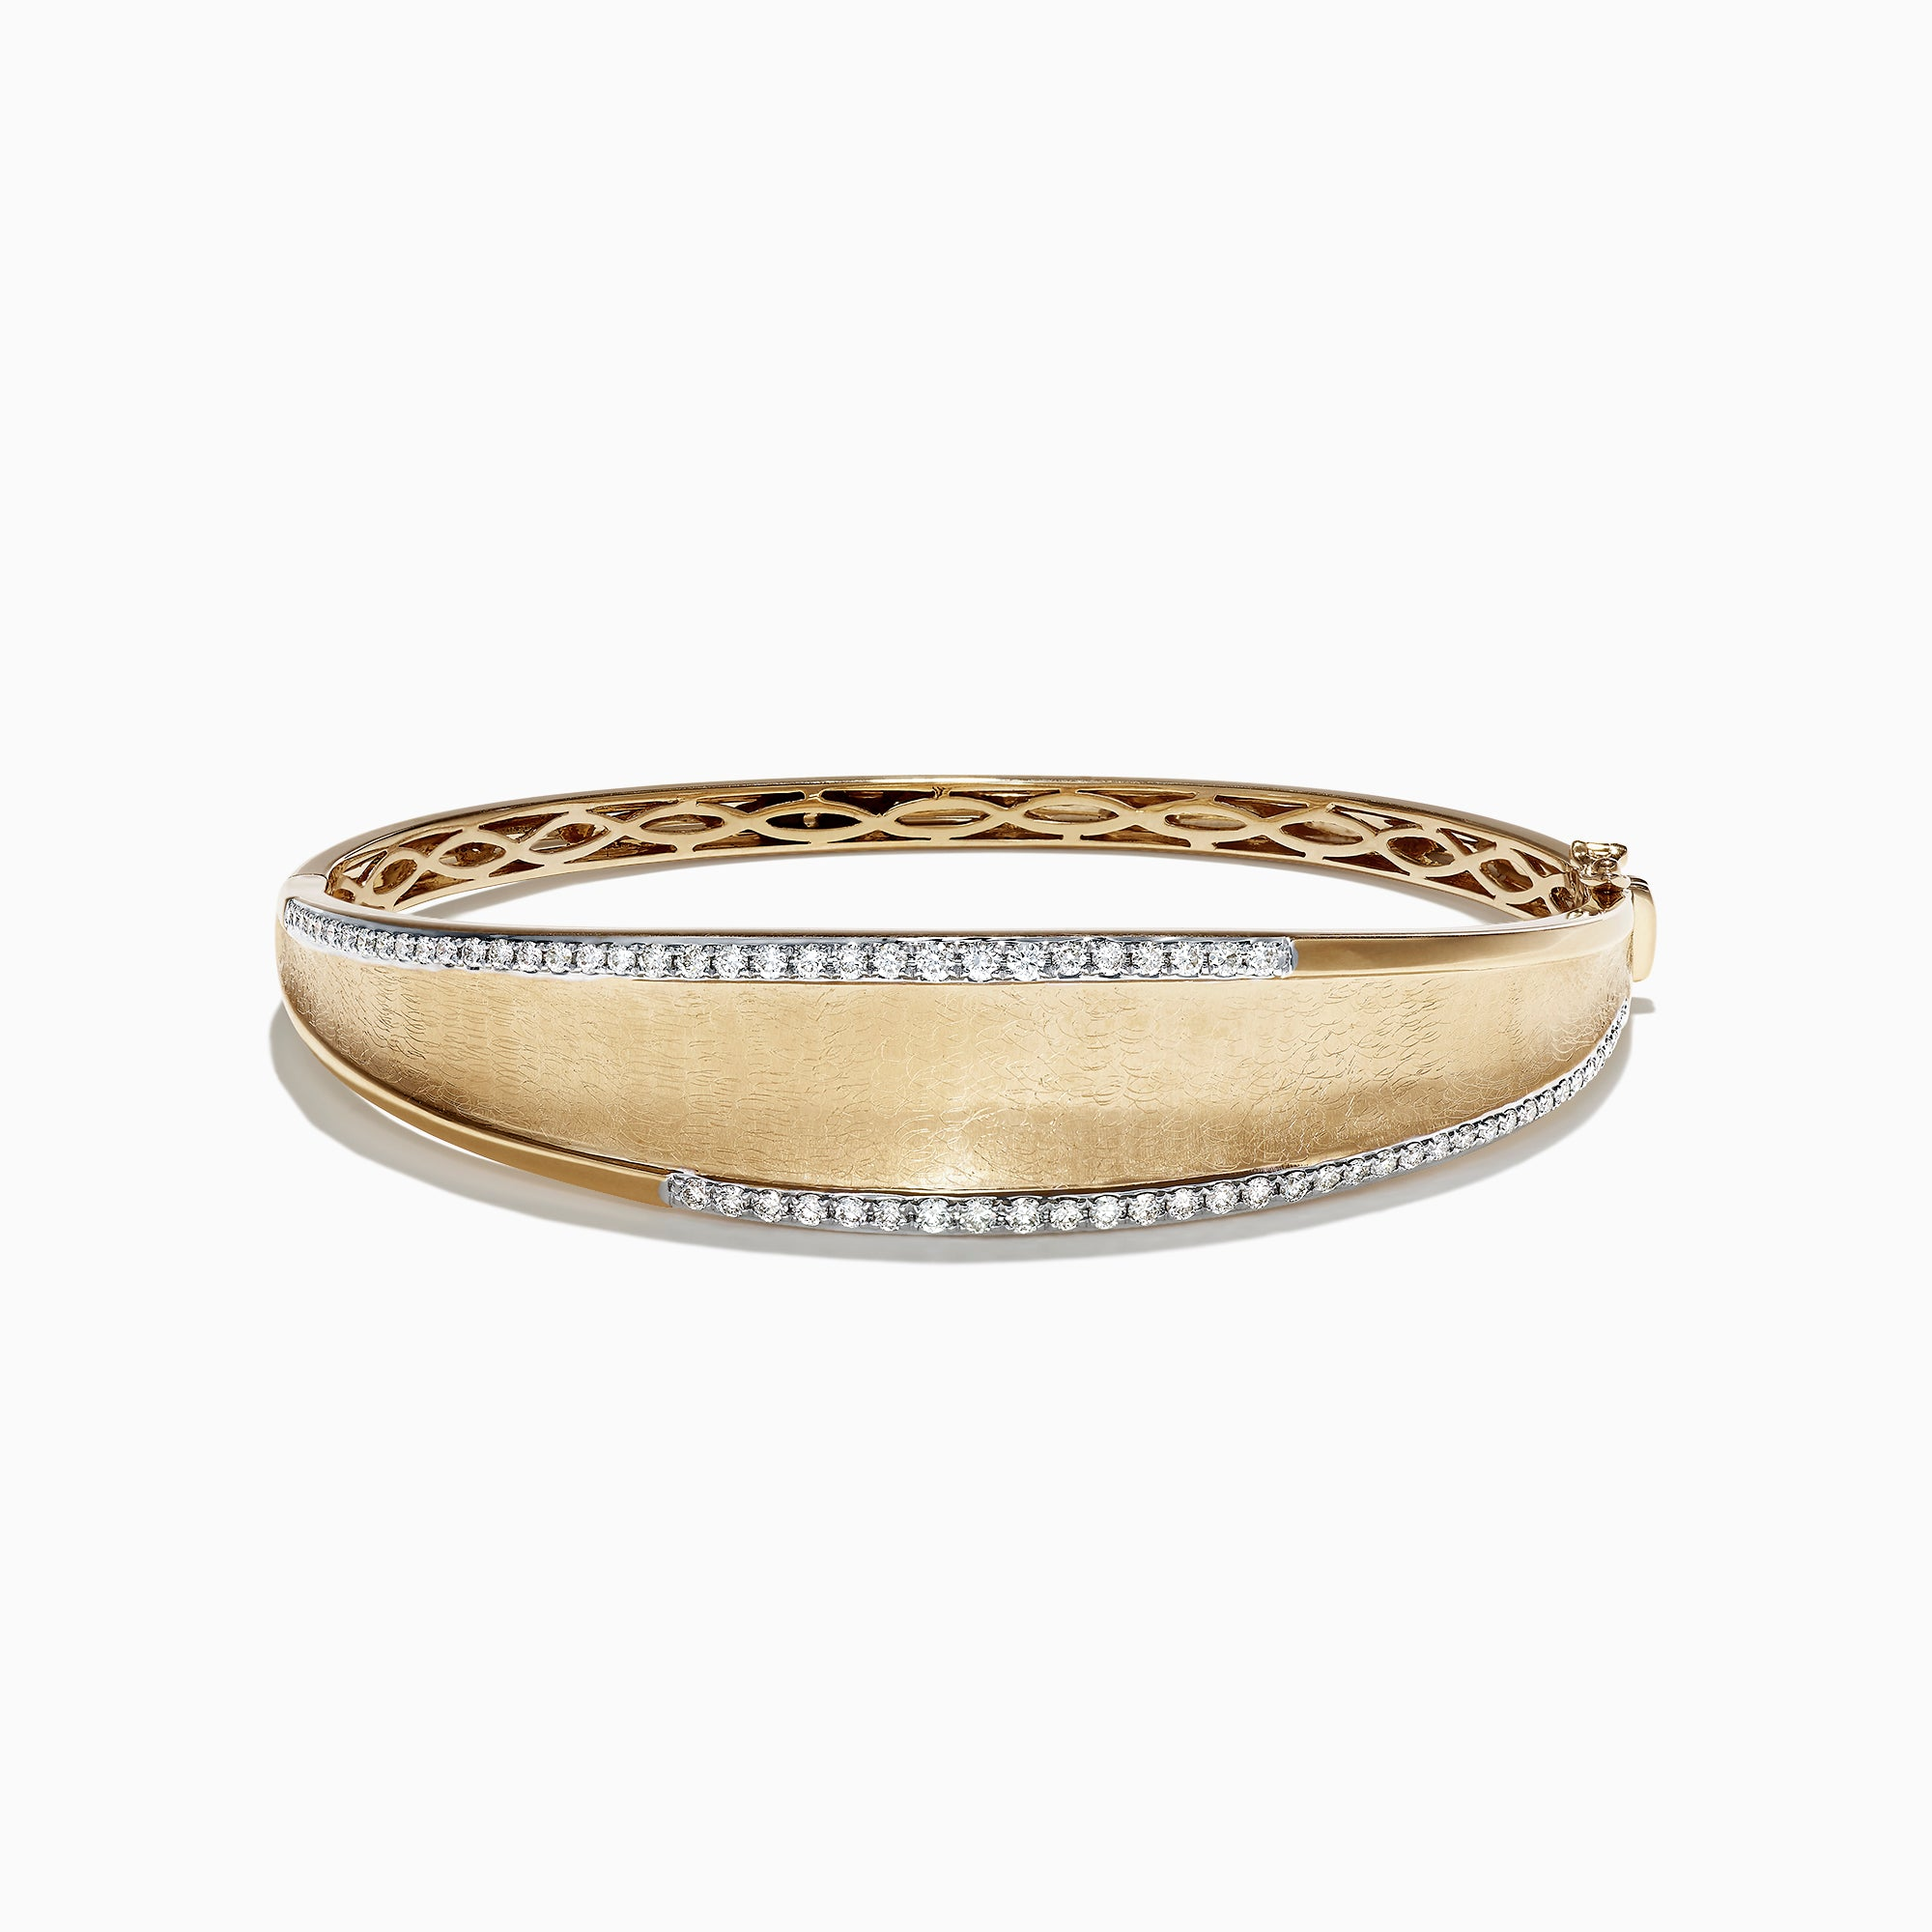 Effy D'Oro 14K Yellow Gold Diamond Bangle, 0.77 TCW